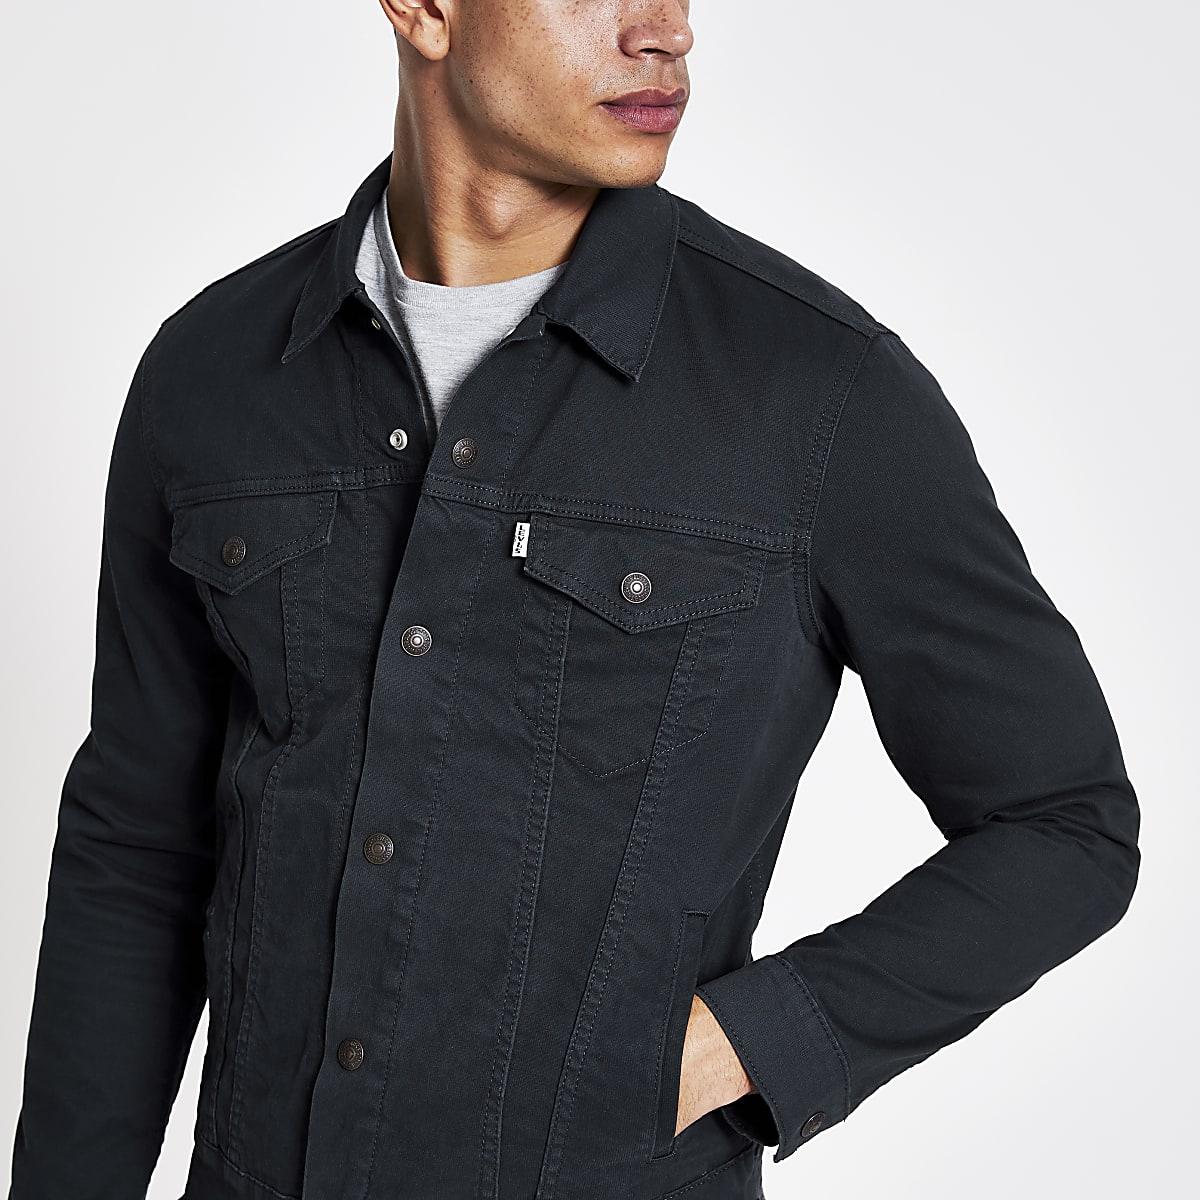 Levi's dark blue trucker jacket